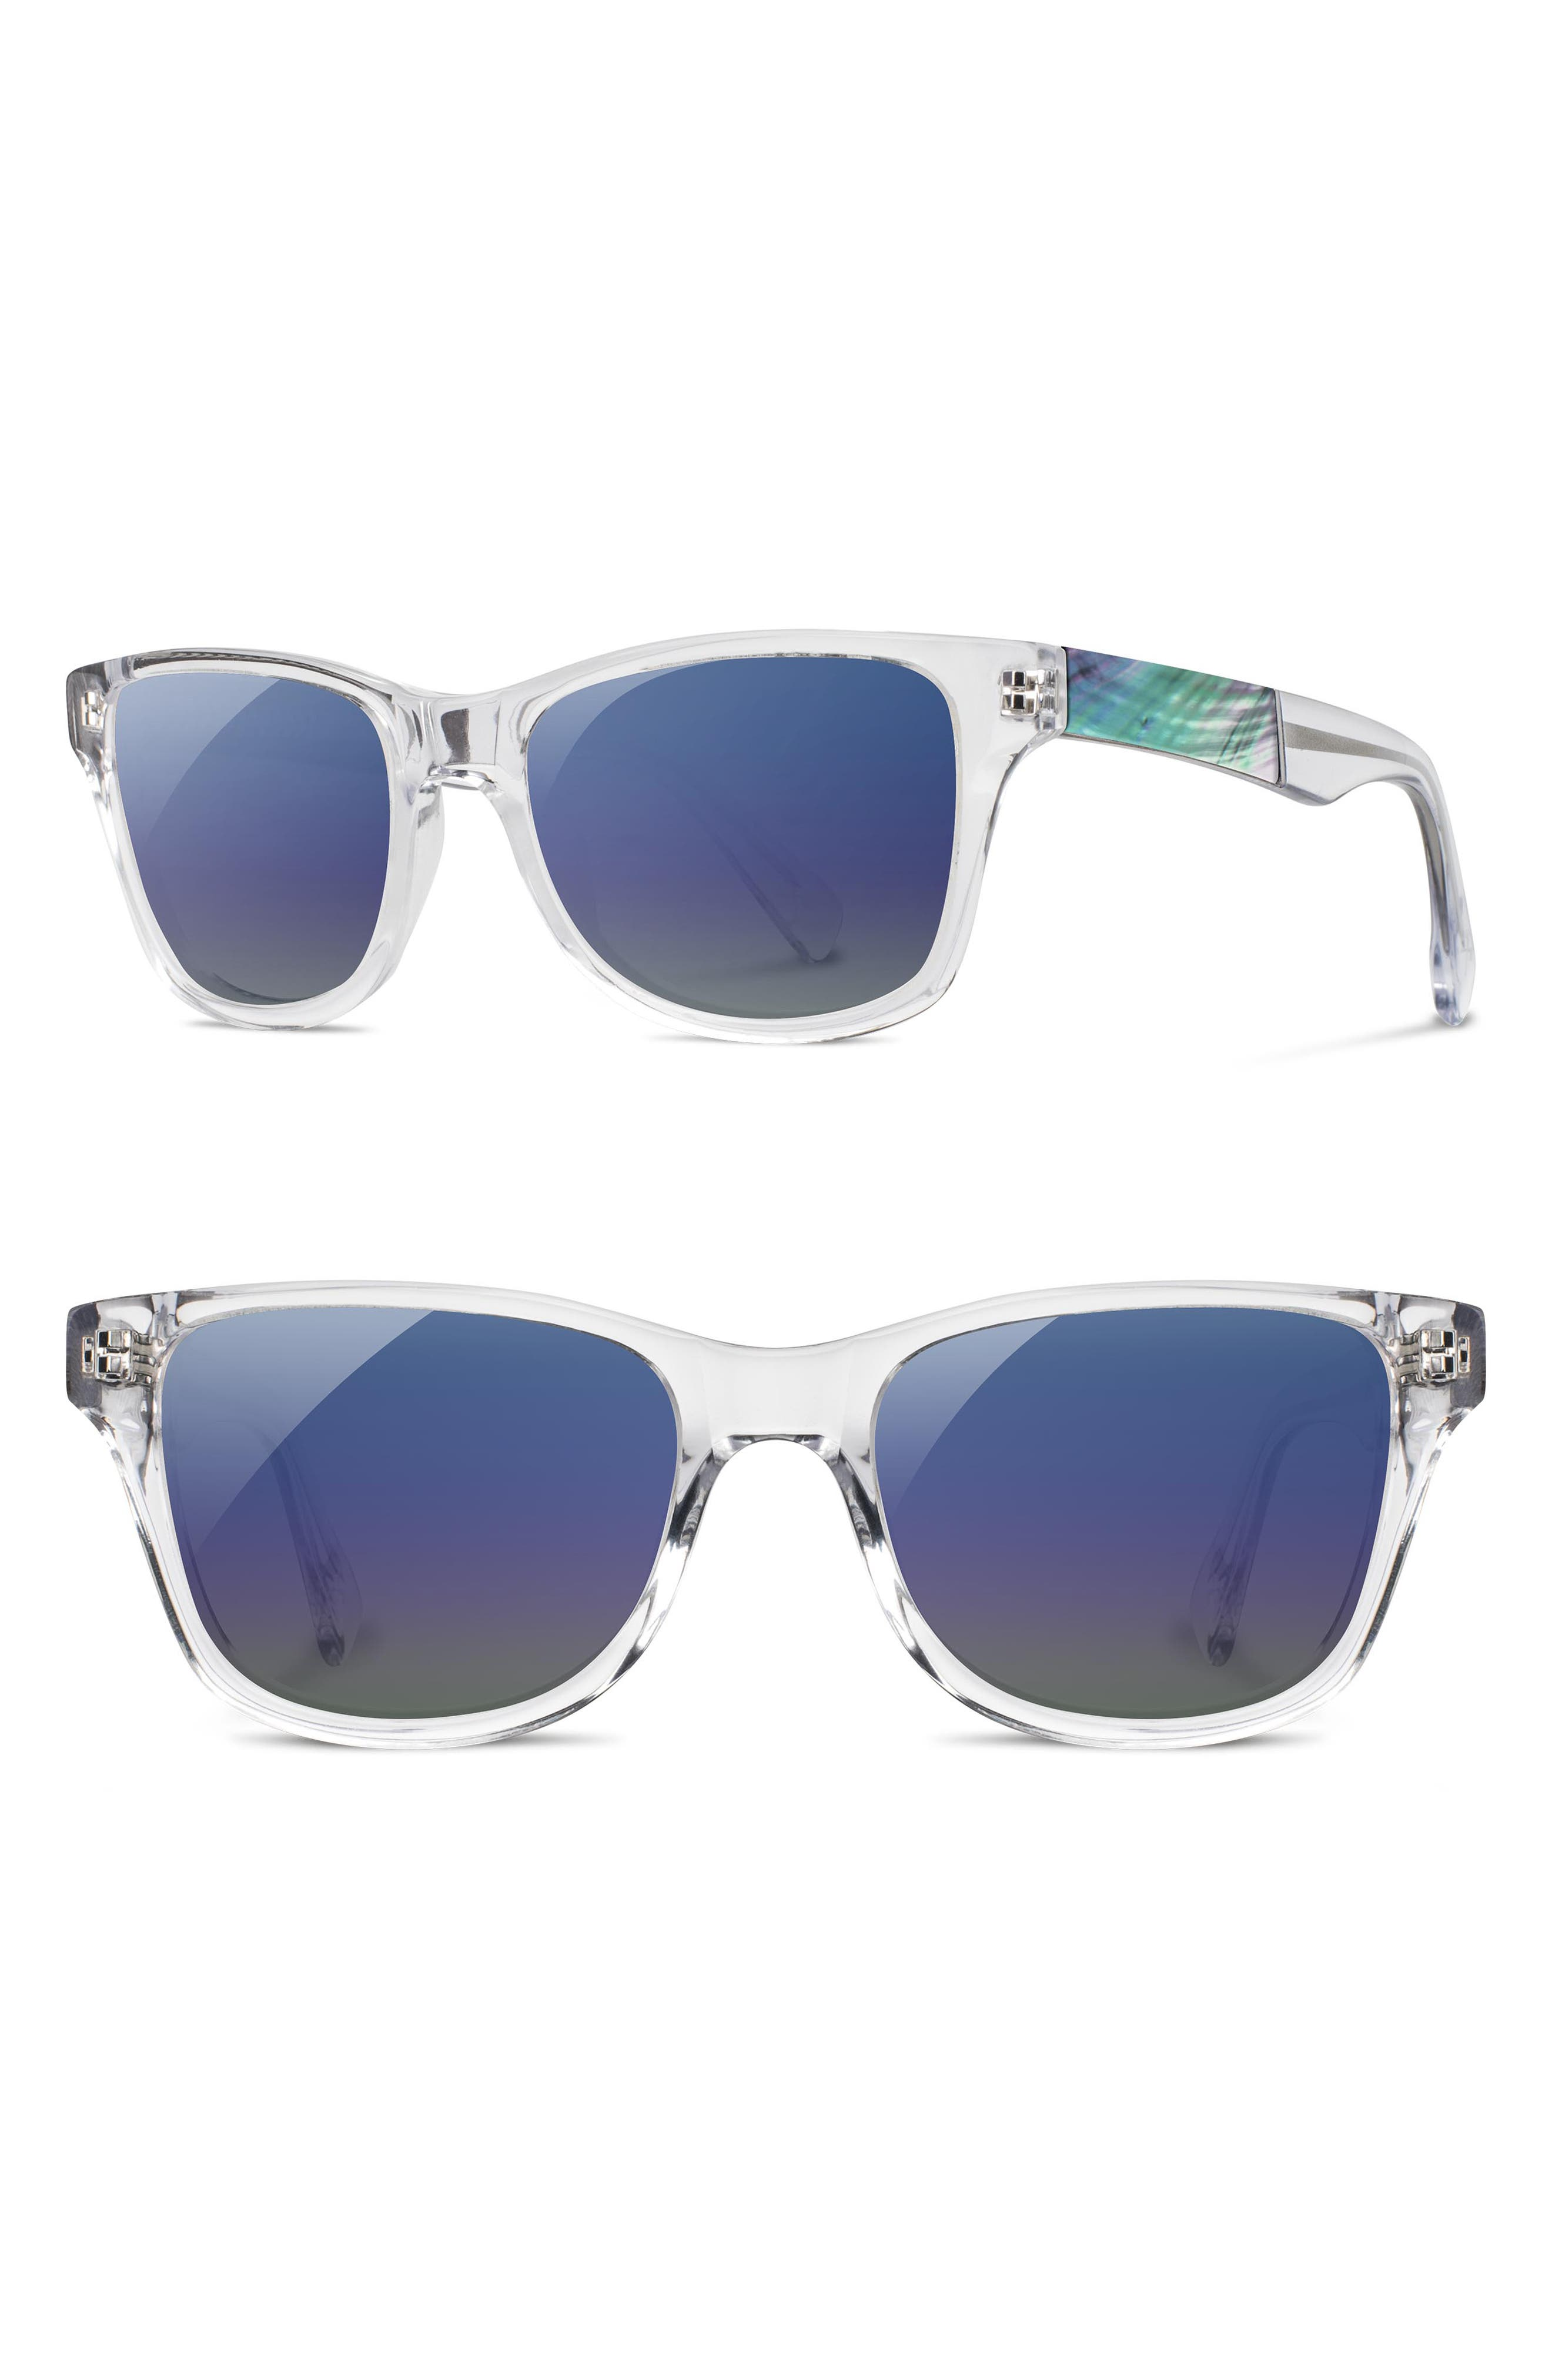 Shwood Polarized Wood Inlay Sunglasses - Crystal/ Abalone Shell/ Blue